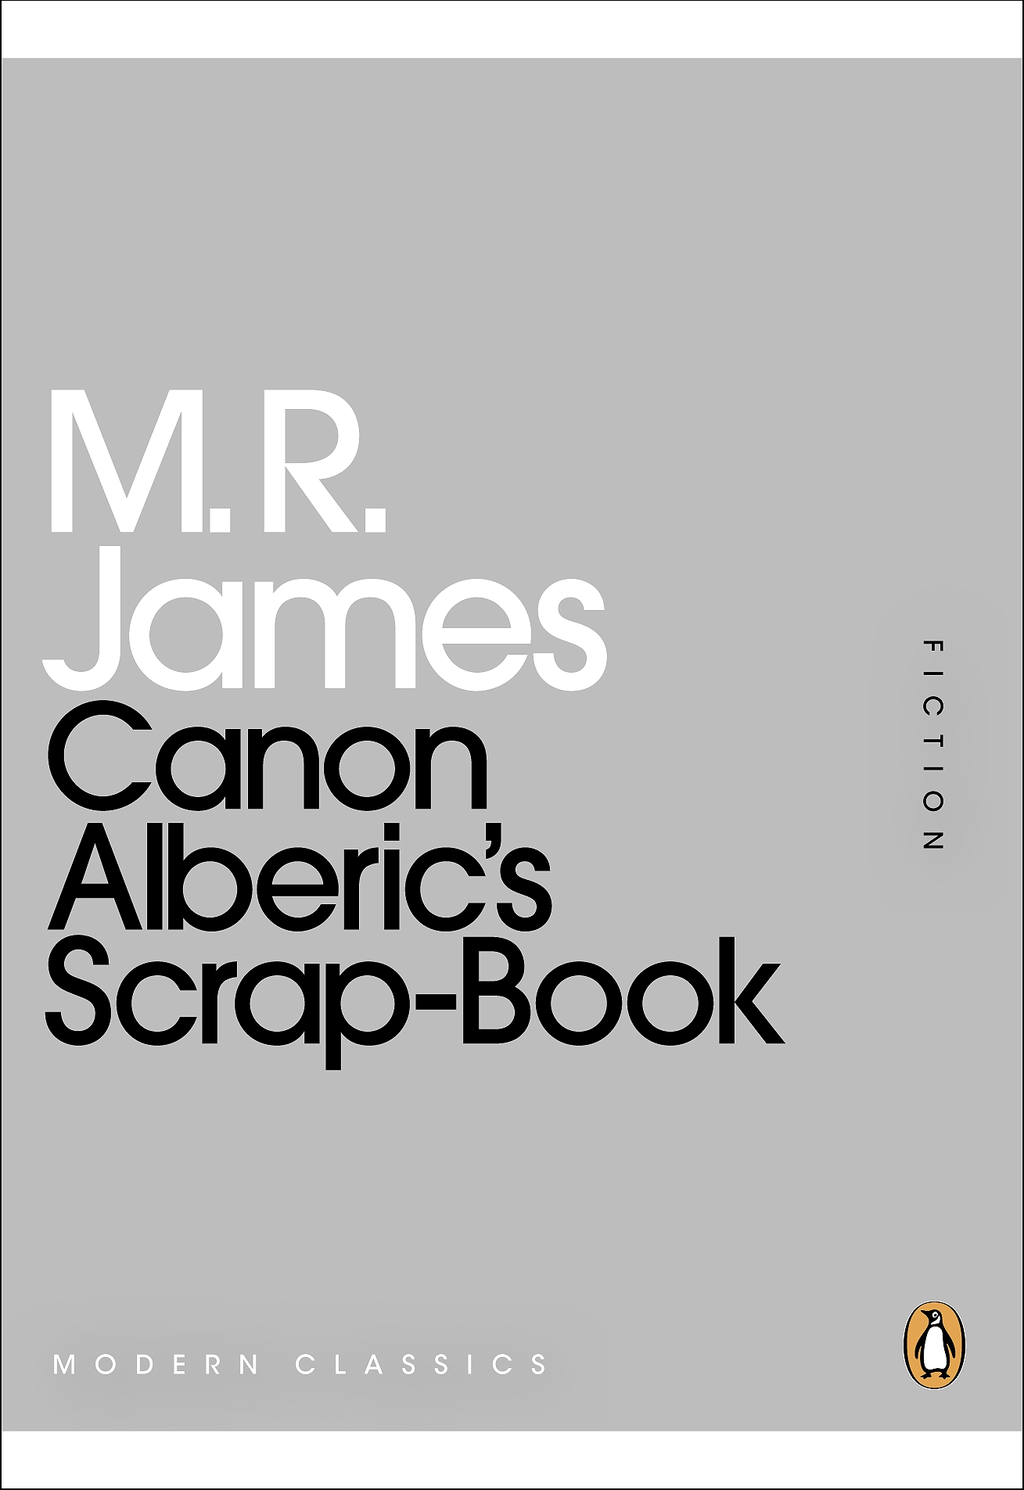 Canon Alberic's Scrap-Book By: M. R. James